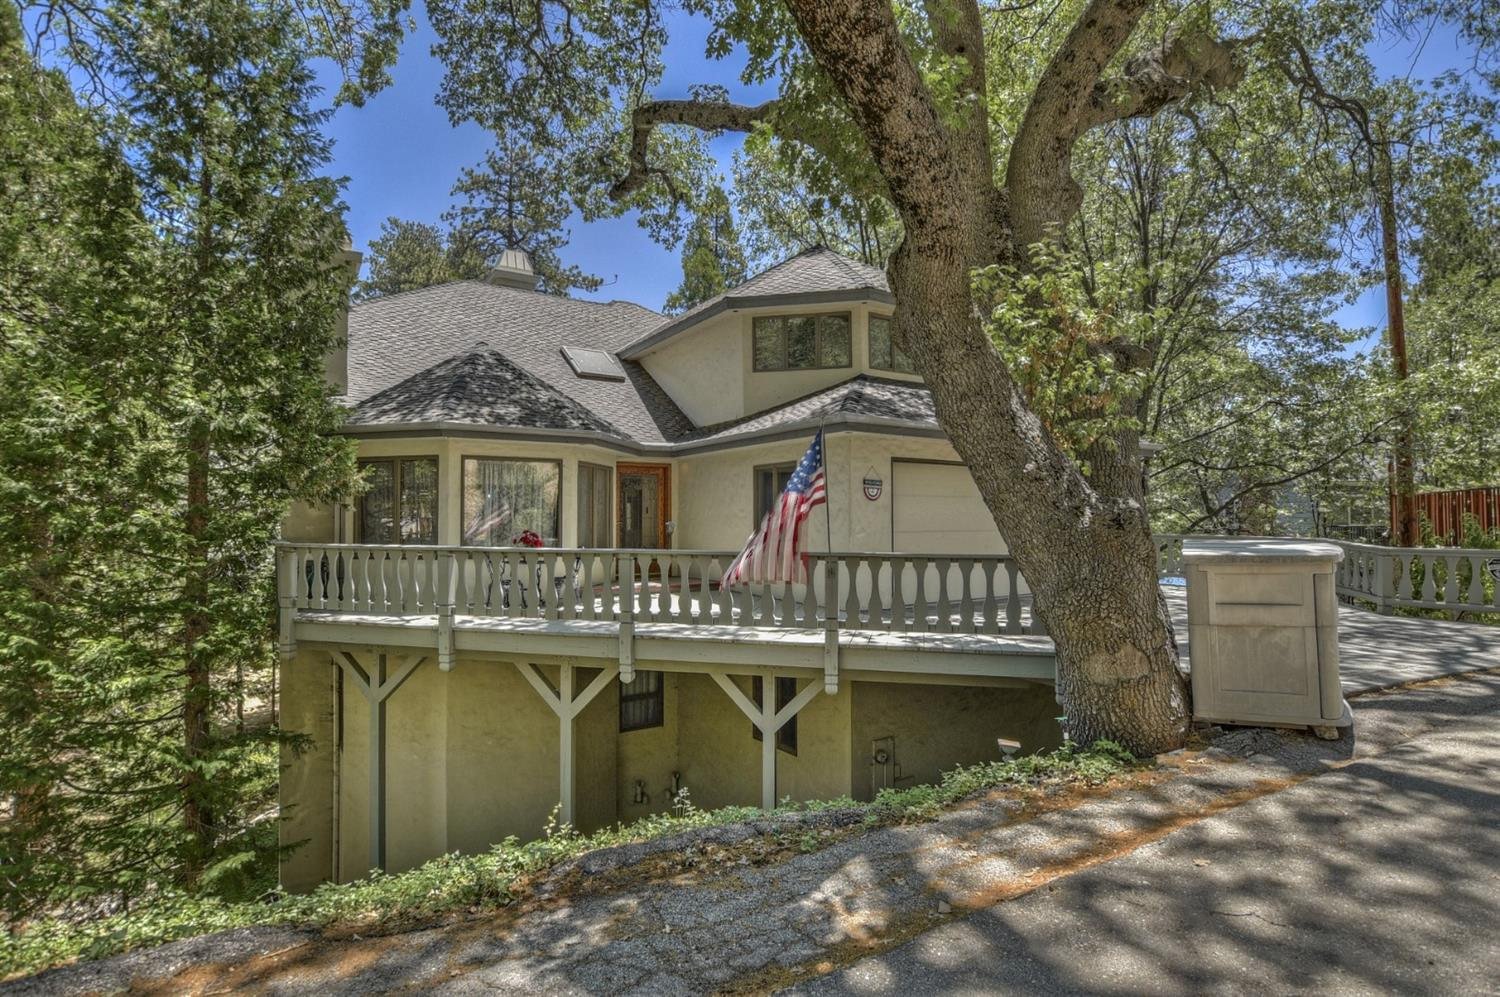 27613 W Shore Road, Lake Arrowhead, CA 92352 - Lake Arrowhead, CA real estate listing